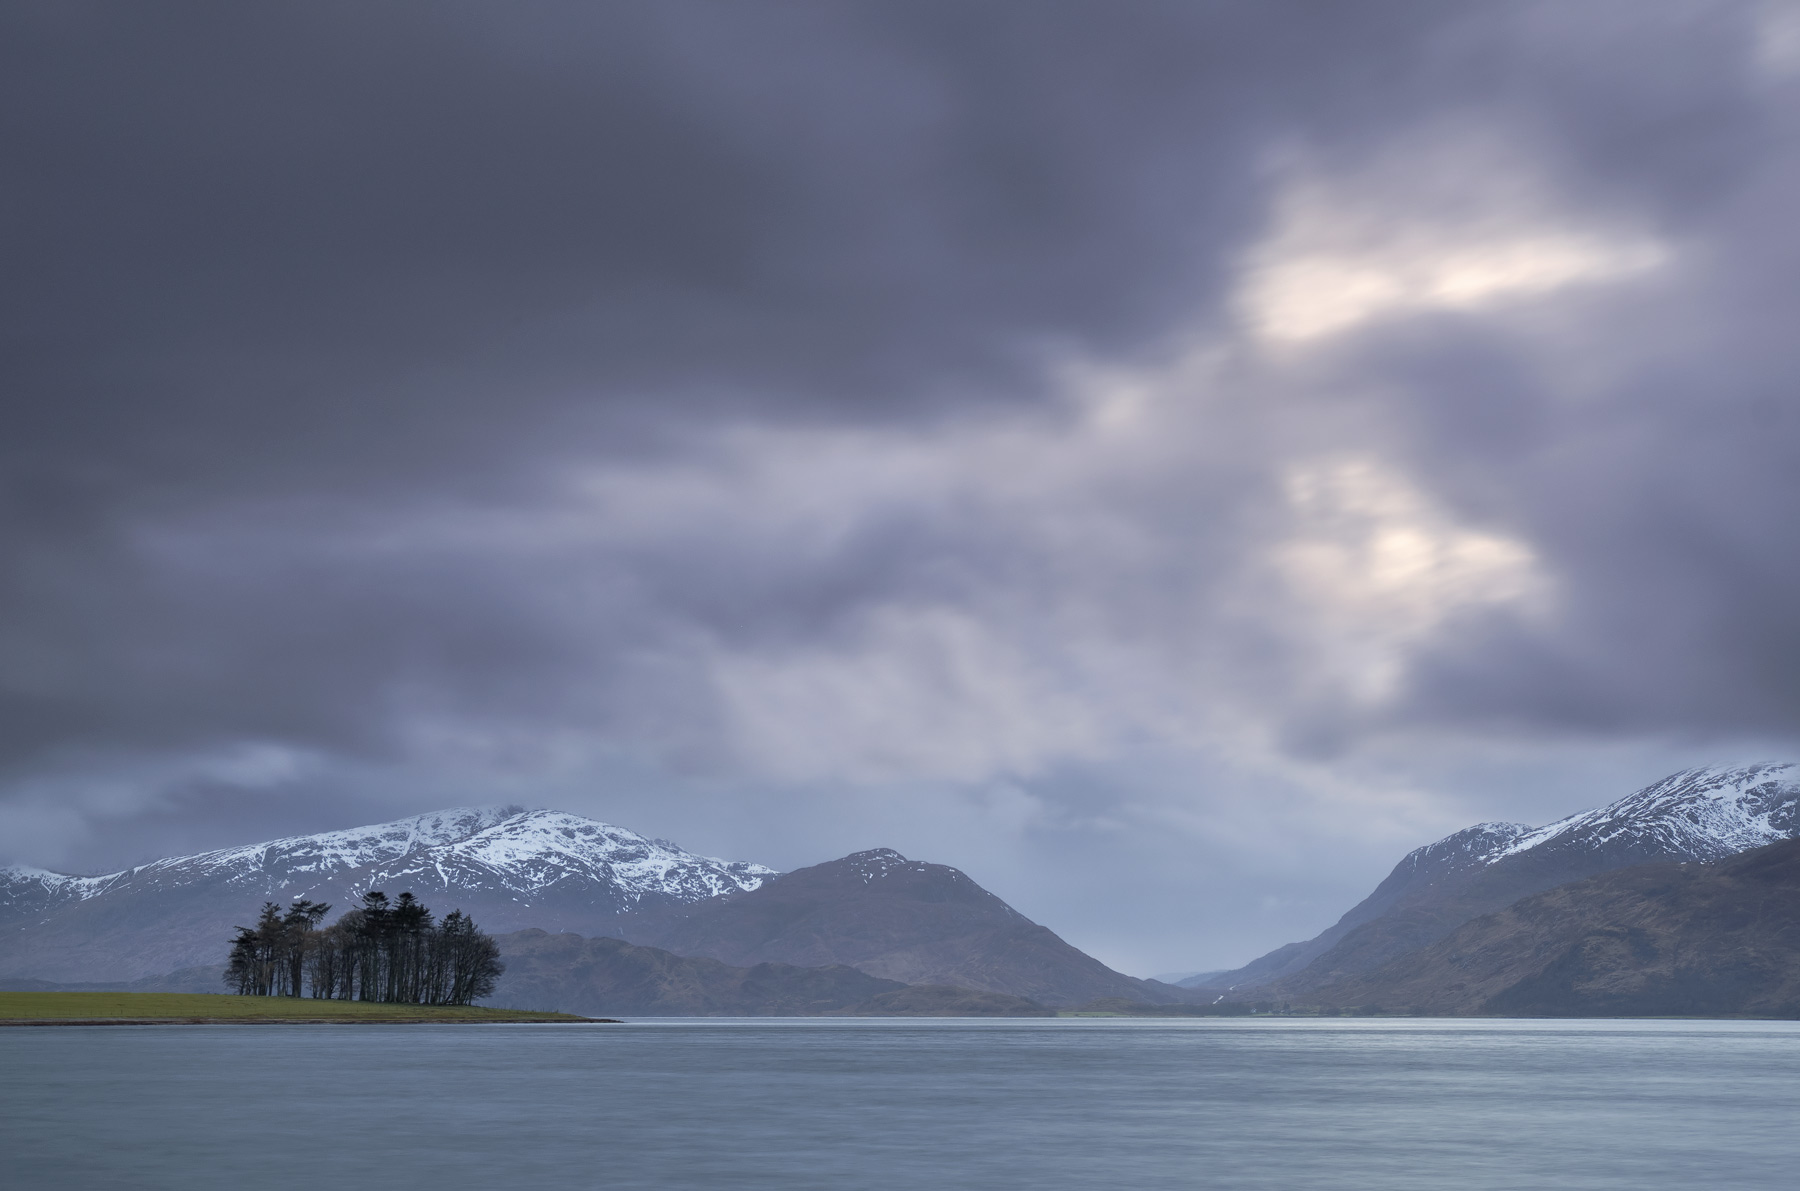 Storm Front Appin, Appin, Argyll, Scotland, rain, biblical, deluge, mountains, lurid, blue, snow, peaks, sombre, trees  , photo